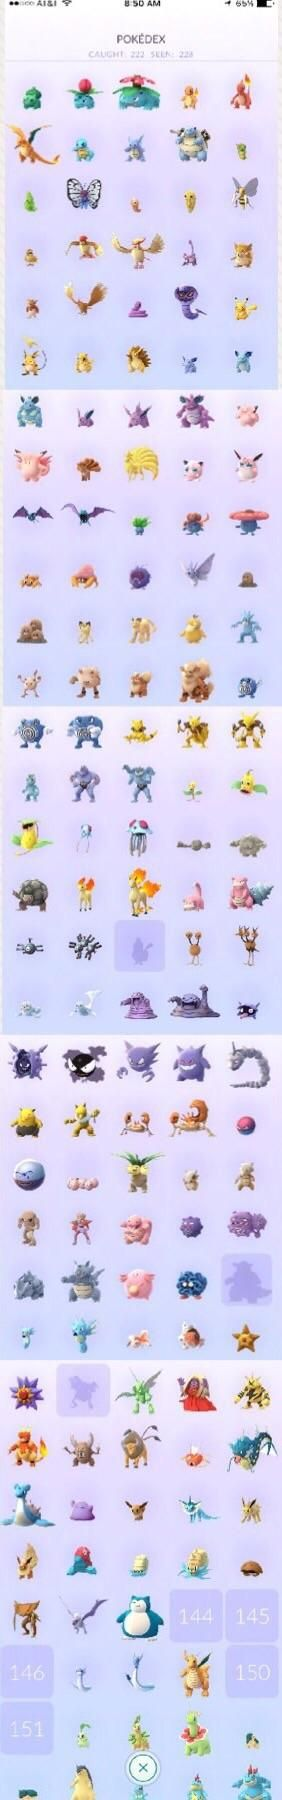 [screenshot] day 1 trainer - i finally joined the gen 1 pokedex completion club (non-regionals) thanks to aerodactyl